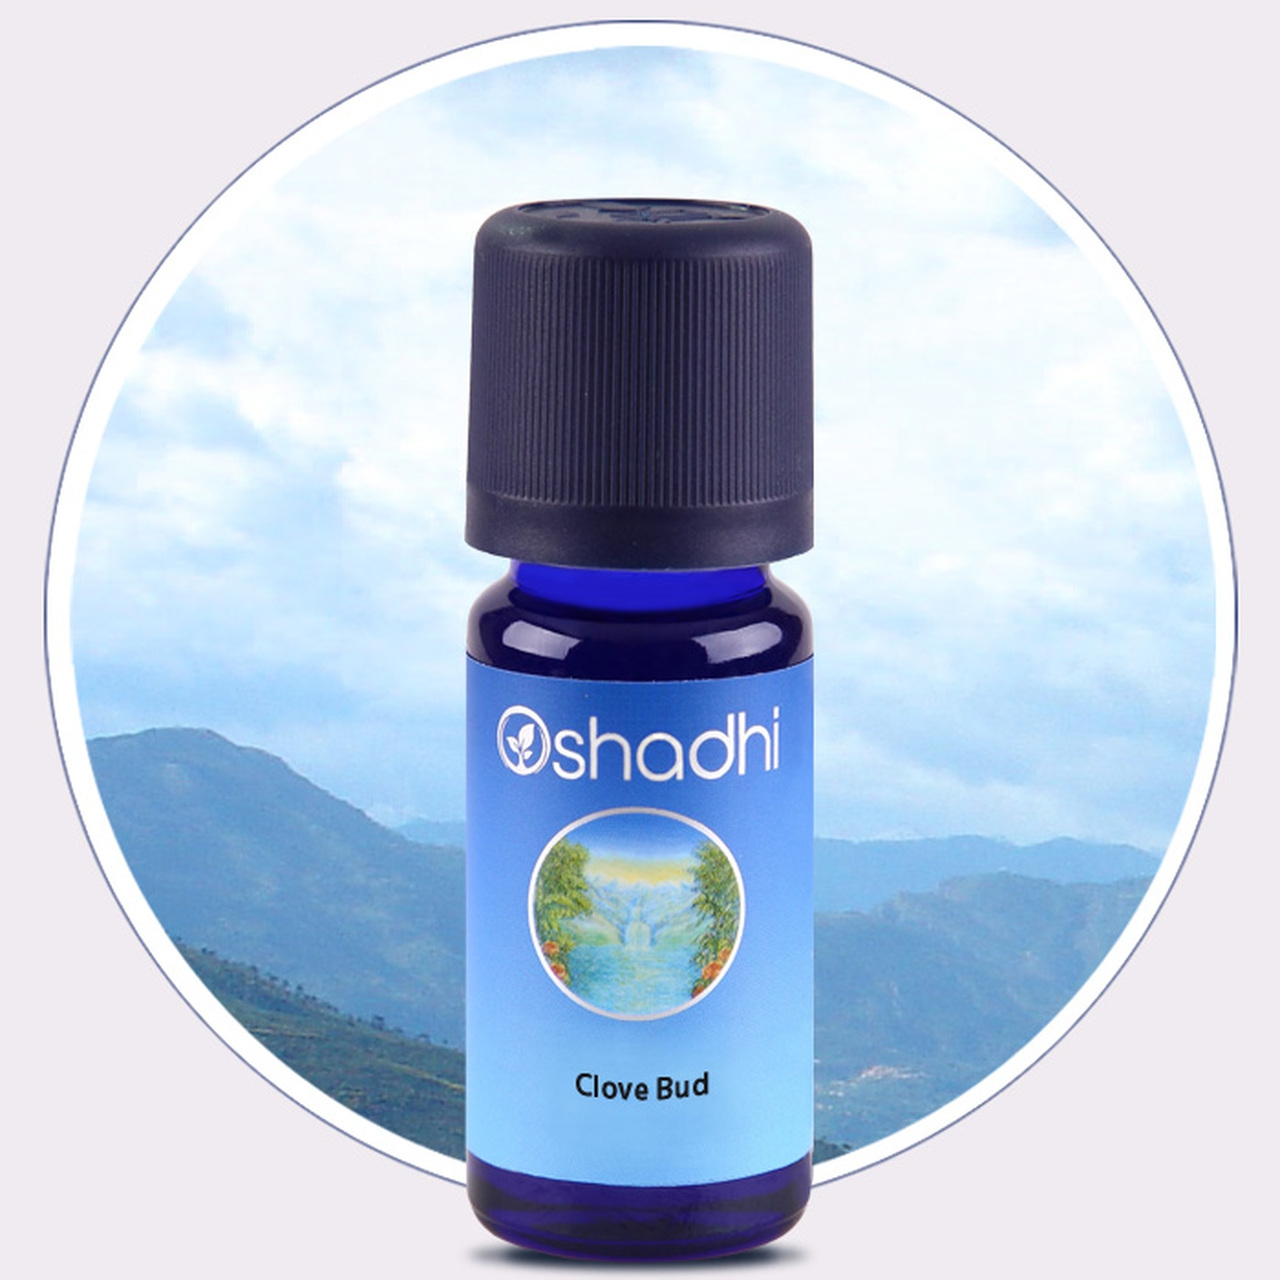 Clove Bud Essential Oil (Oshadhi) 10ml